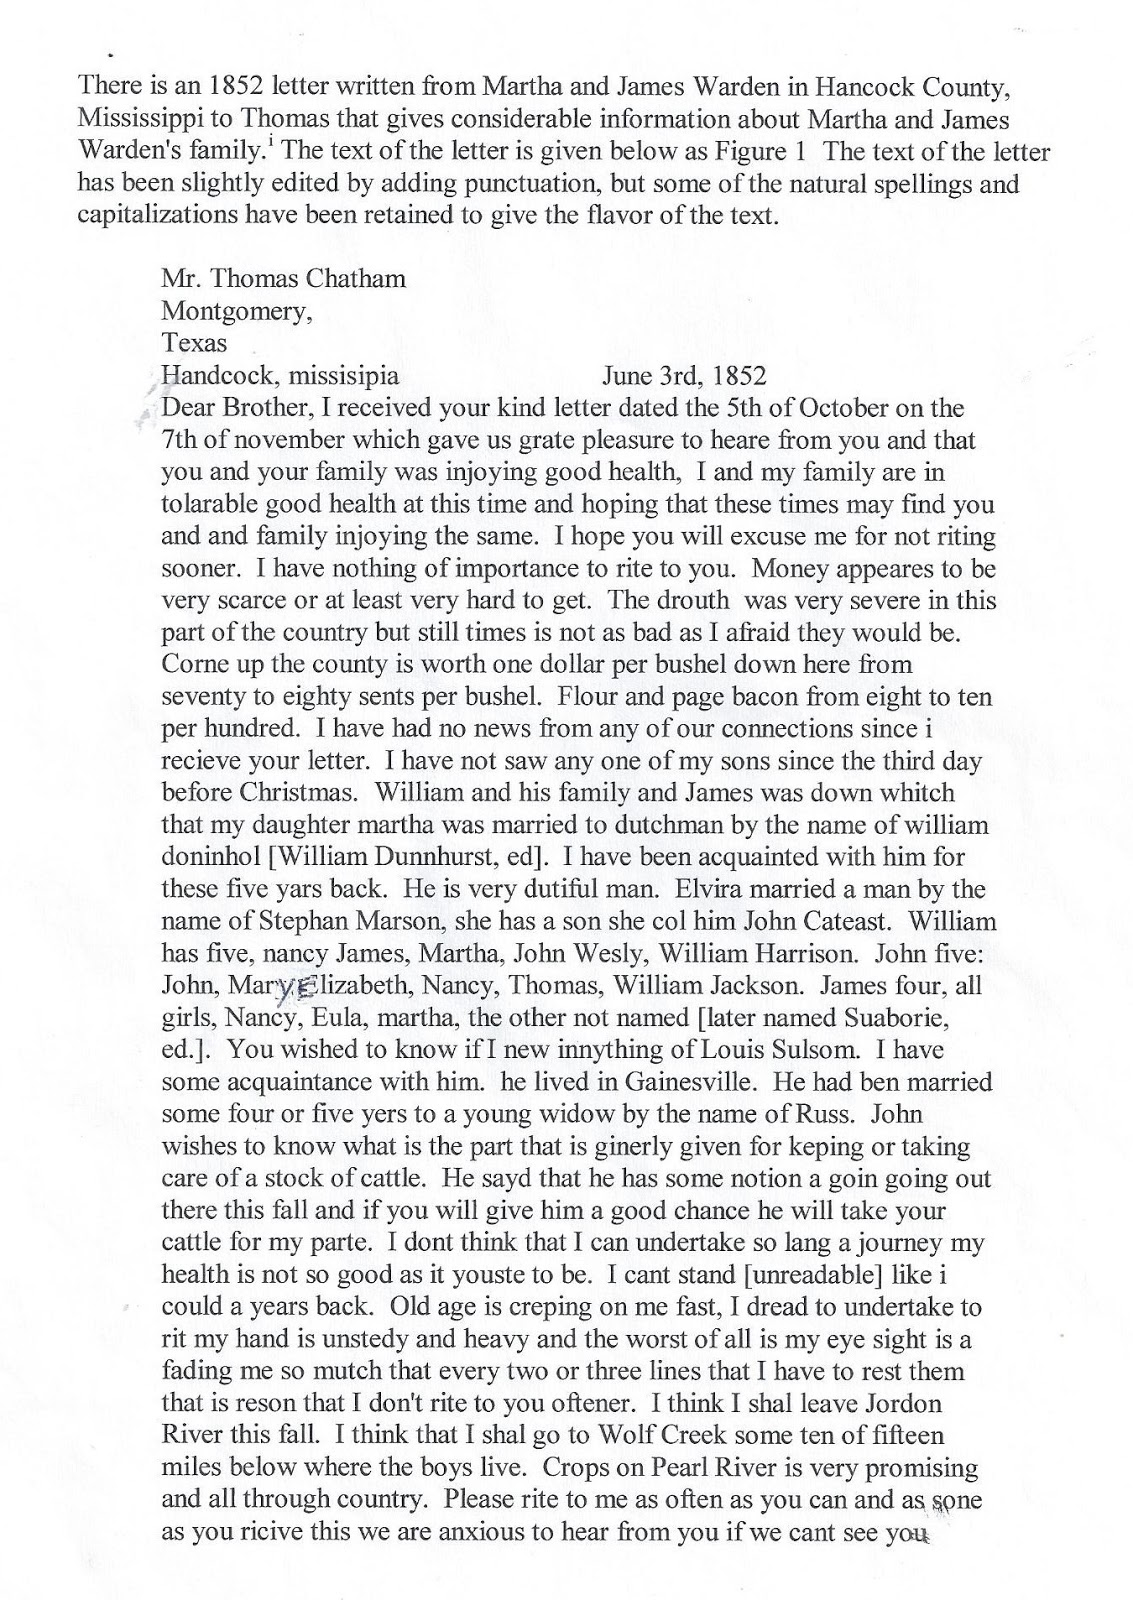 Mississippi washington county chatham -  Original Handwritten Letter From Martha Chatham Warden To Her Brother Thomas Chatham Who Resided In Montgomery Texas Click On Image To Enlarge It